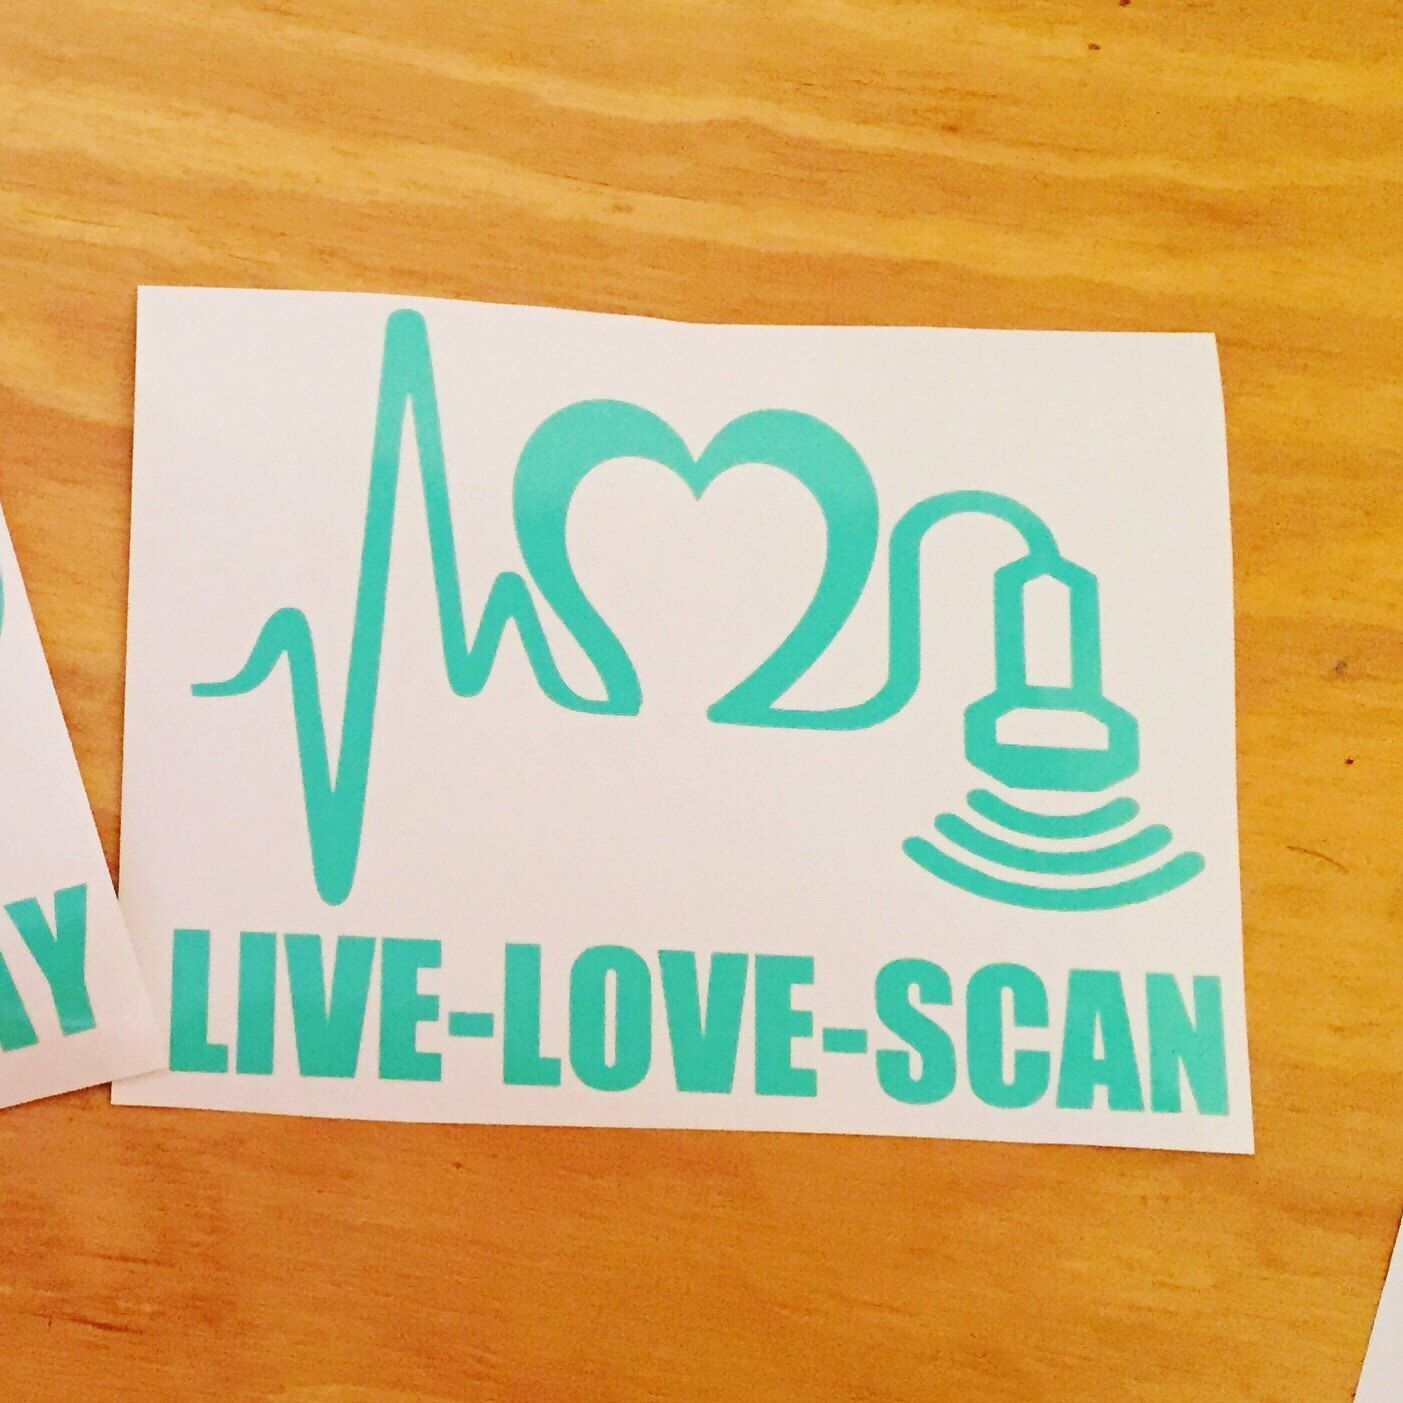 Live love scan ultrasound tech decal Ultrasound tech